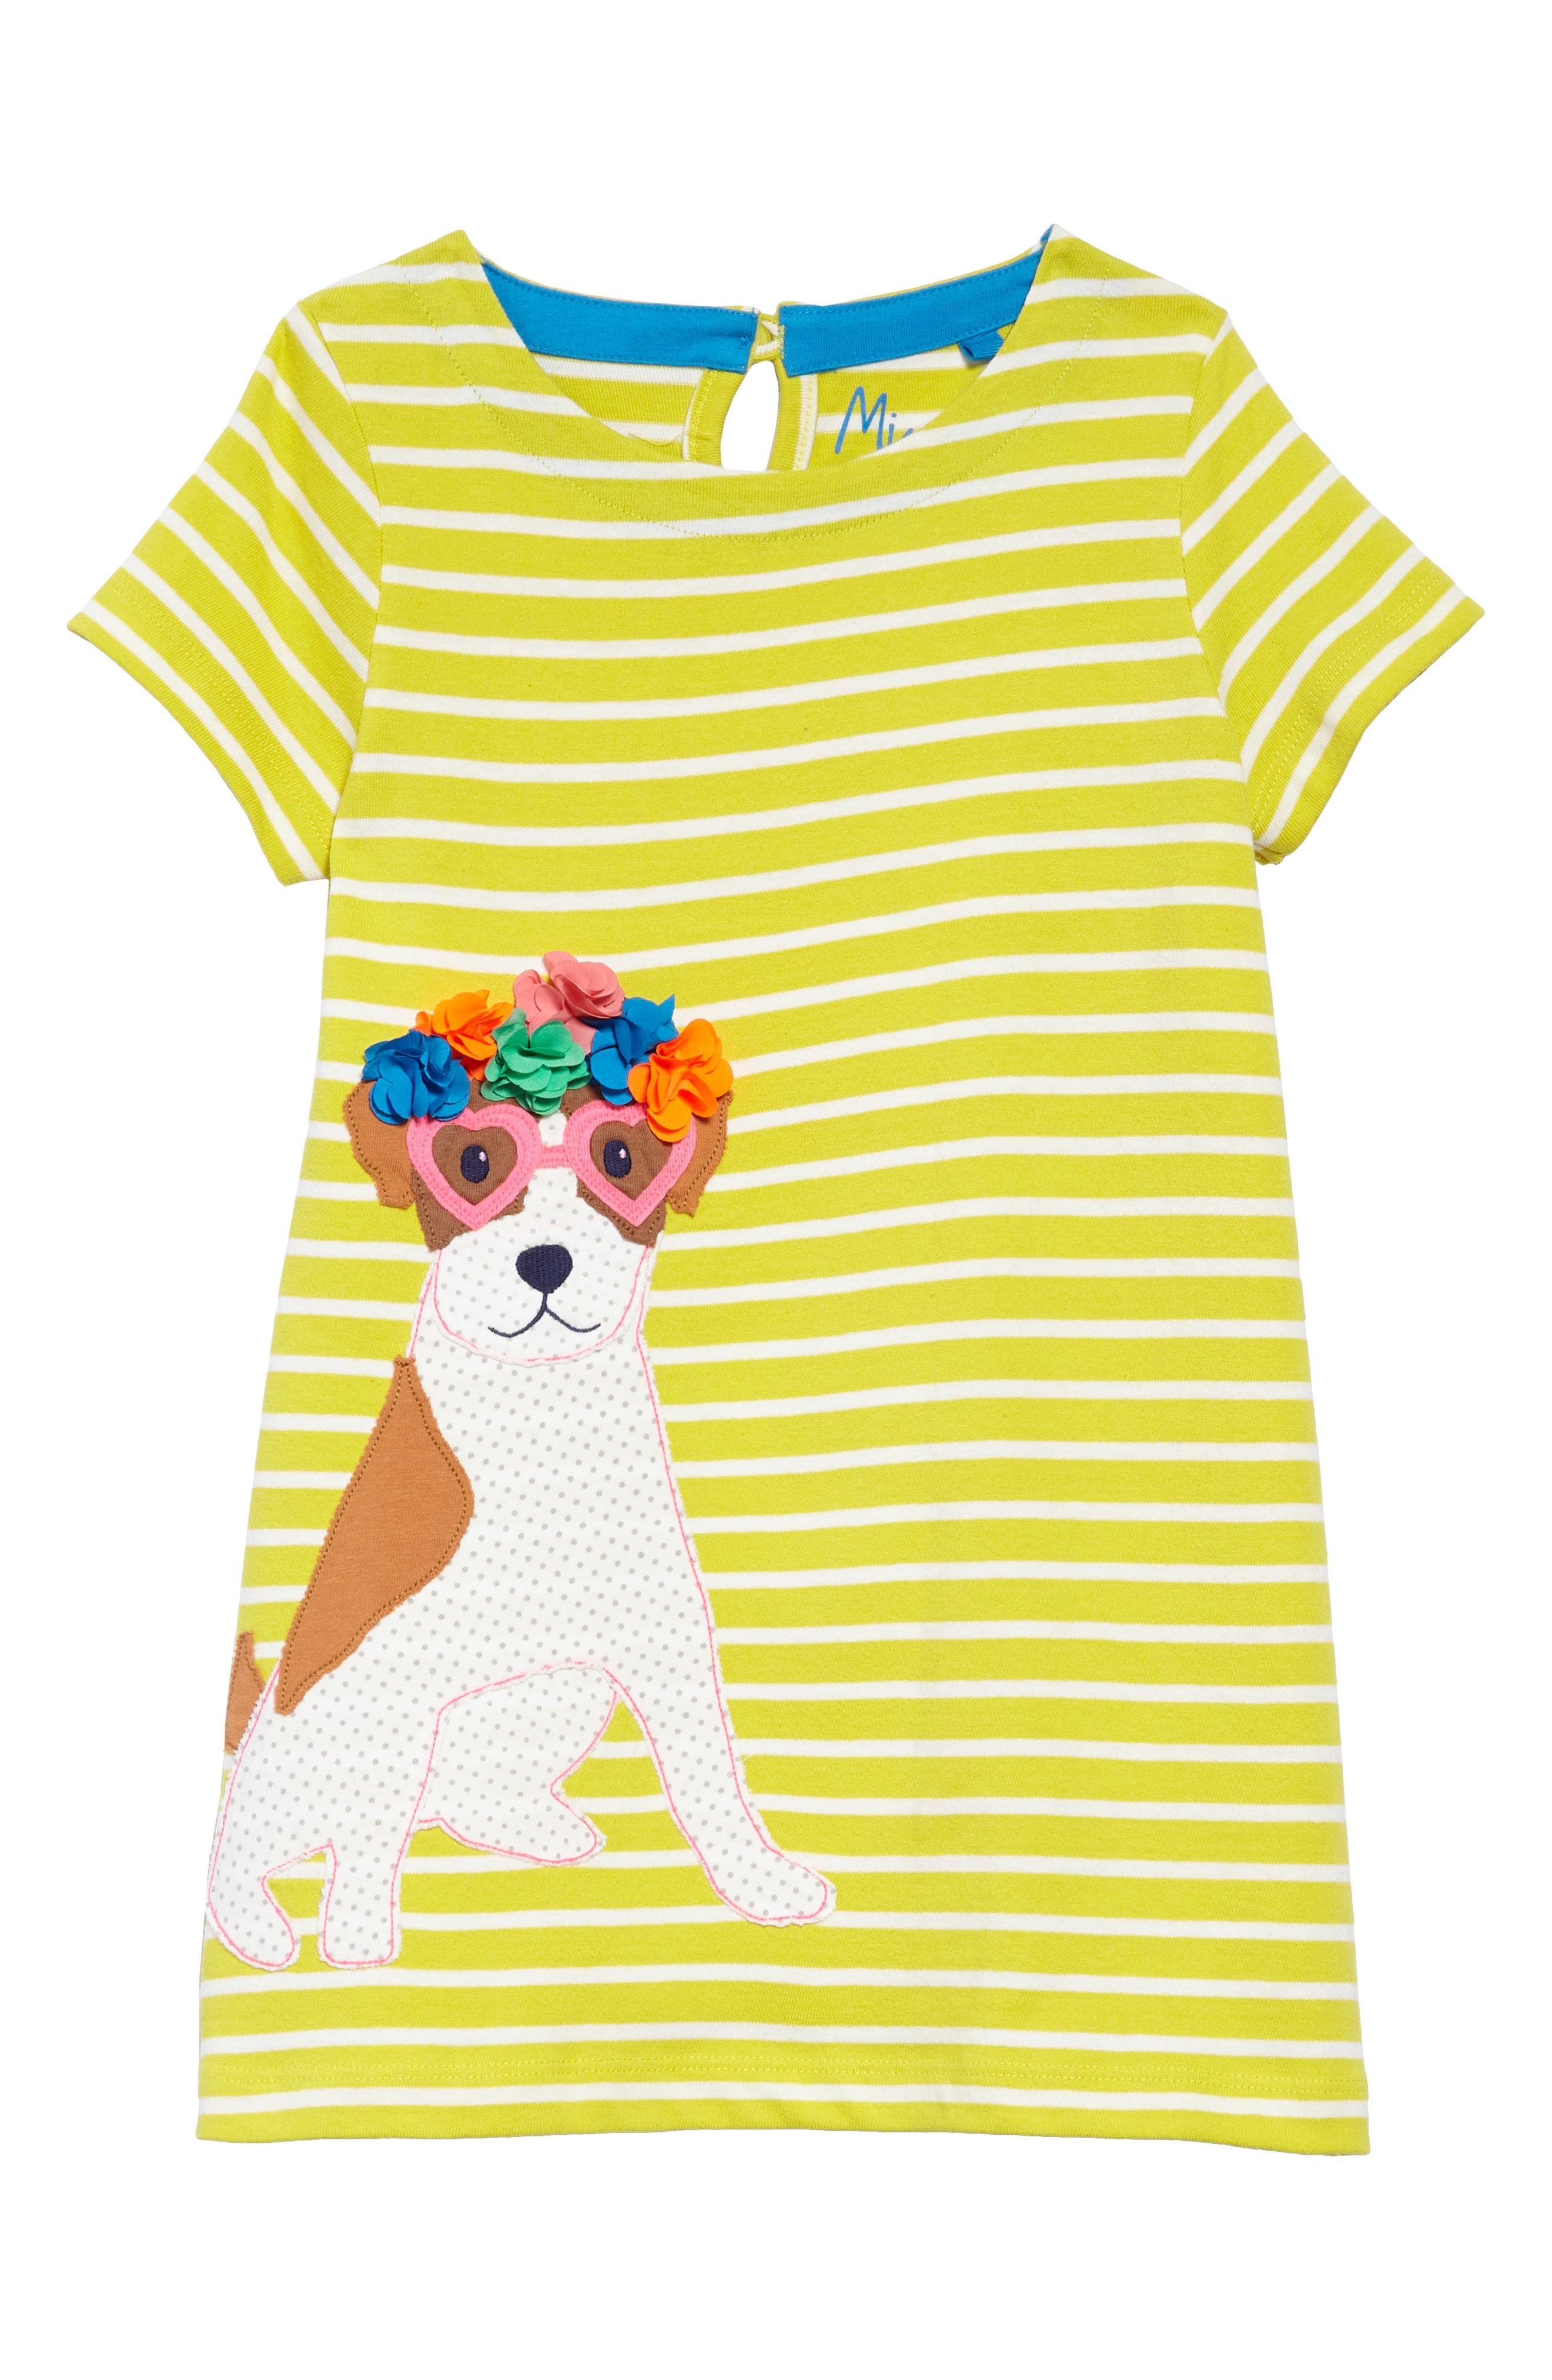 Dog Appliqué Striped Jersey Dress,                         Main,                         color, Yelivory/ Zest Yellow Sprout